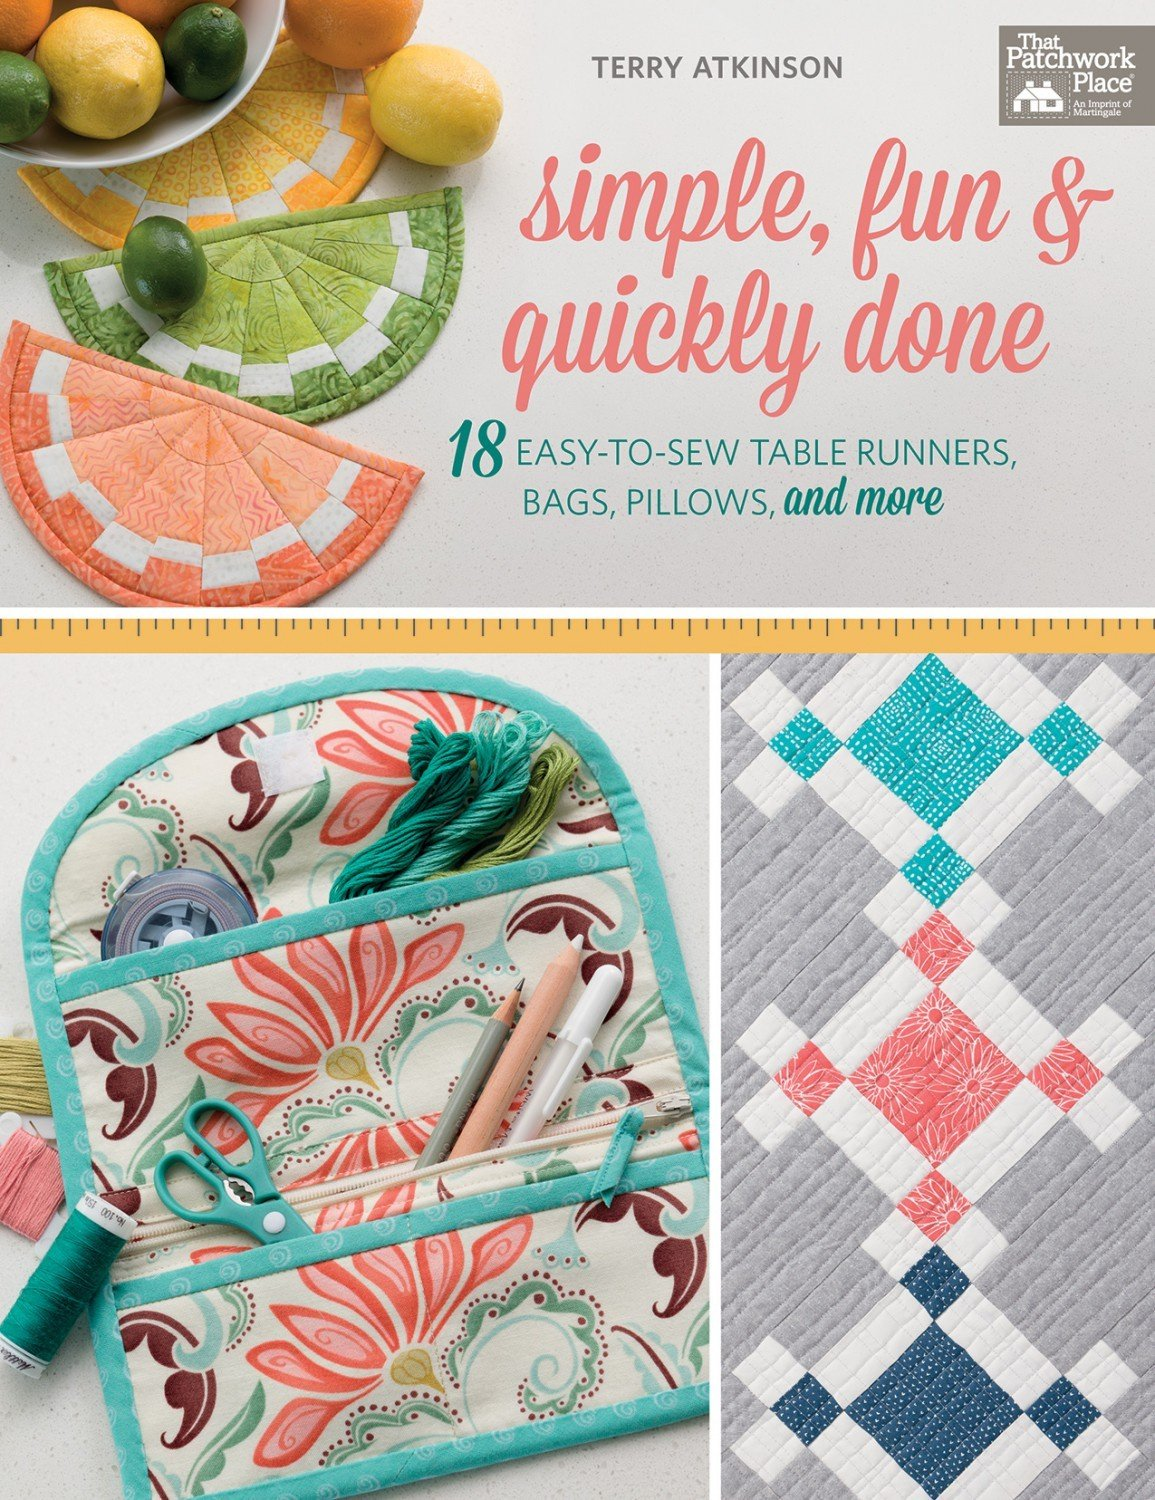 Simple Fun & Quickly Done Book